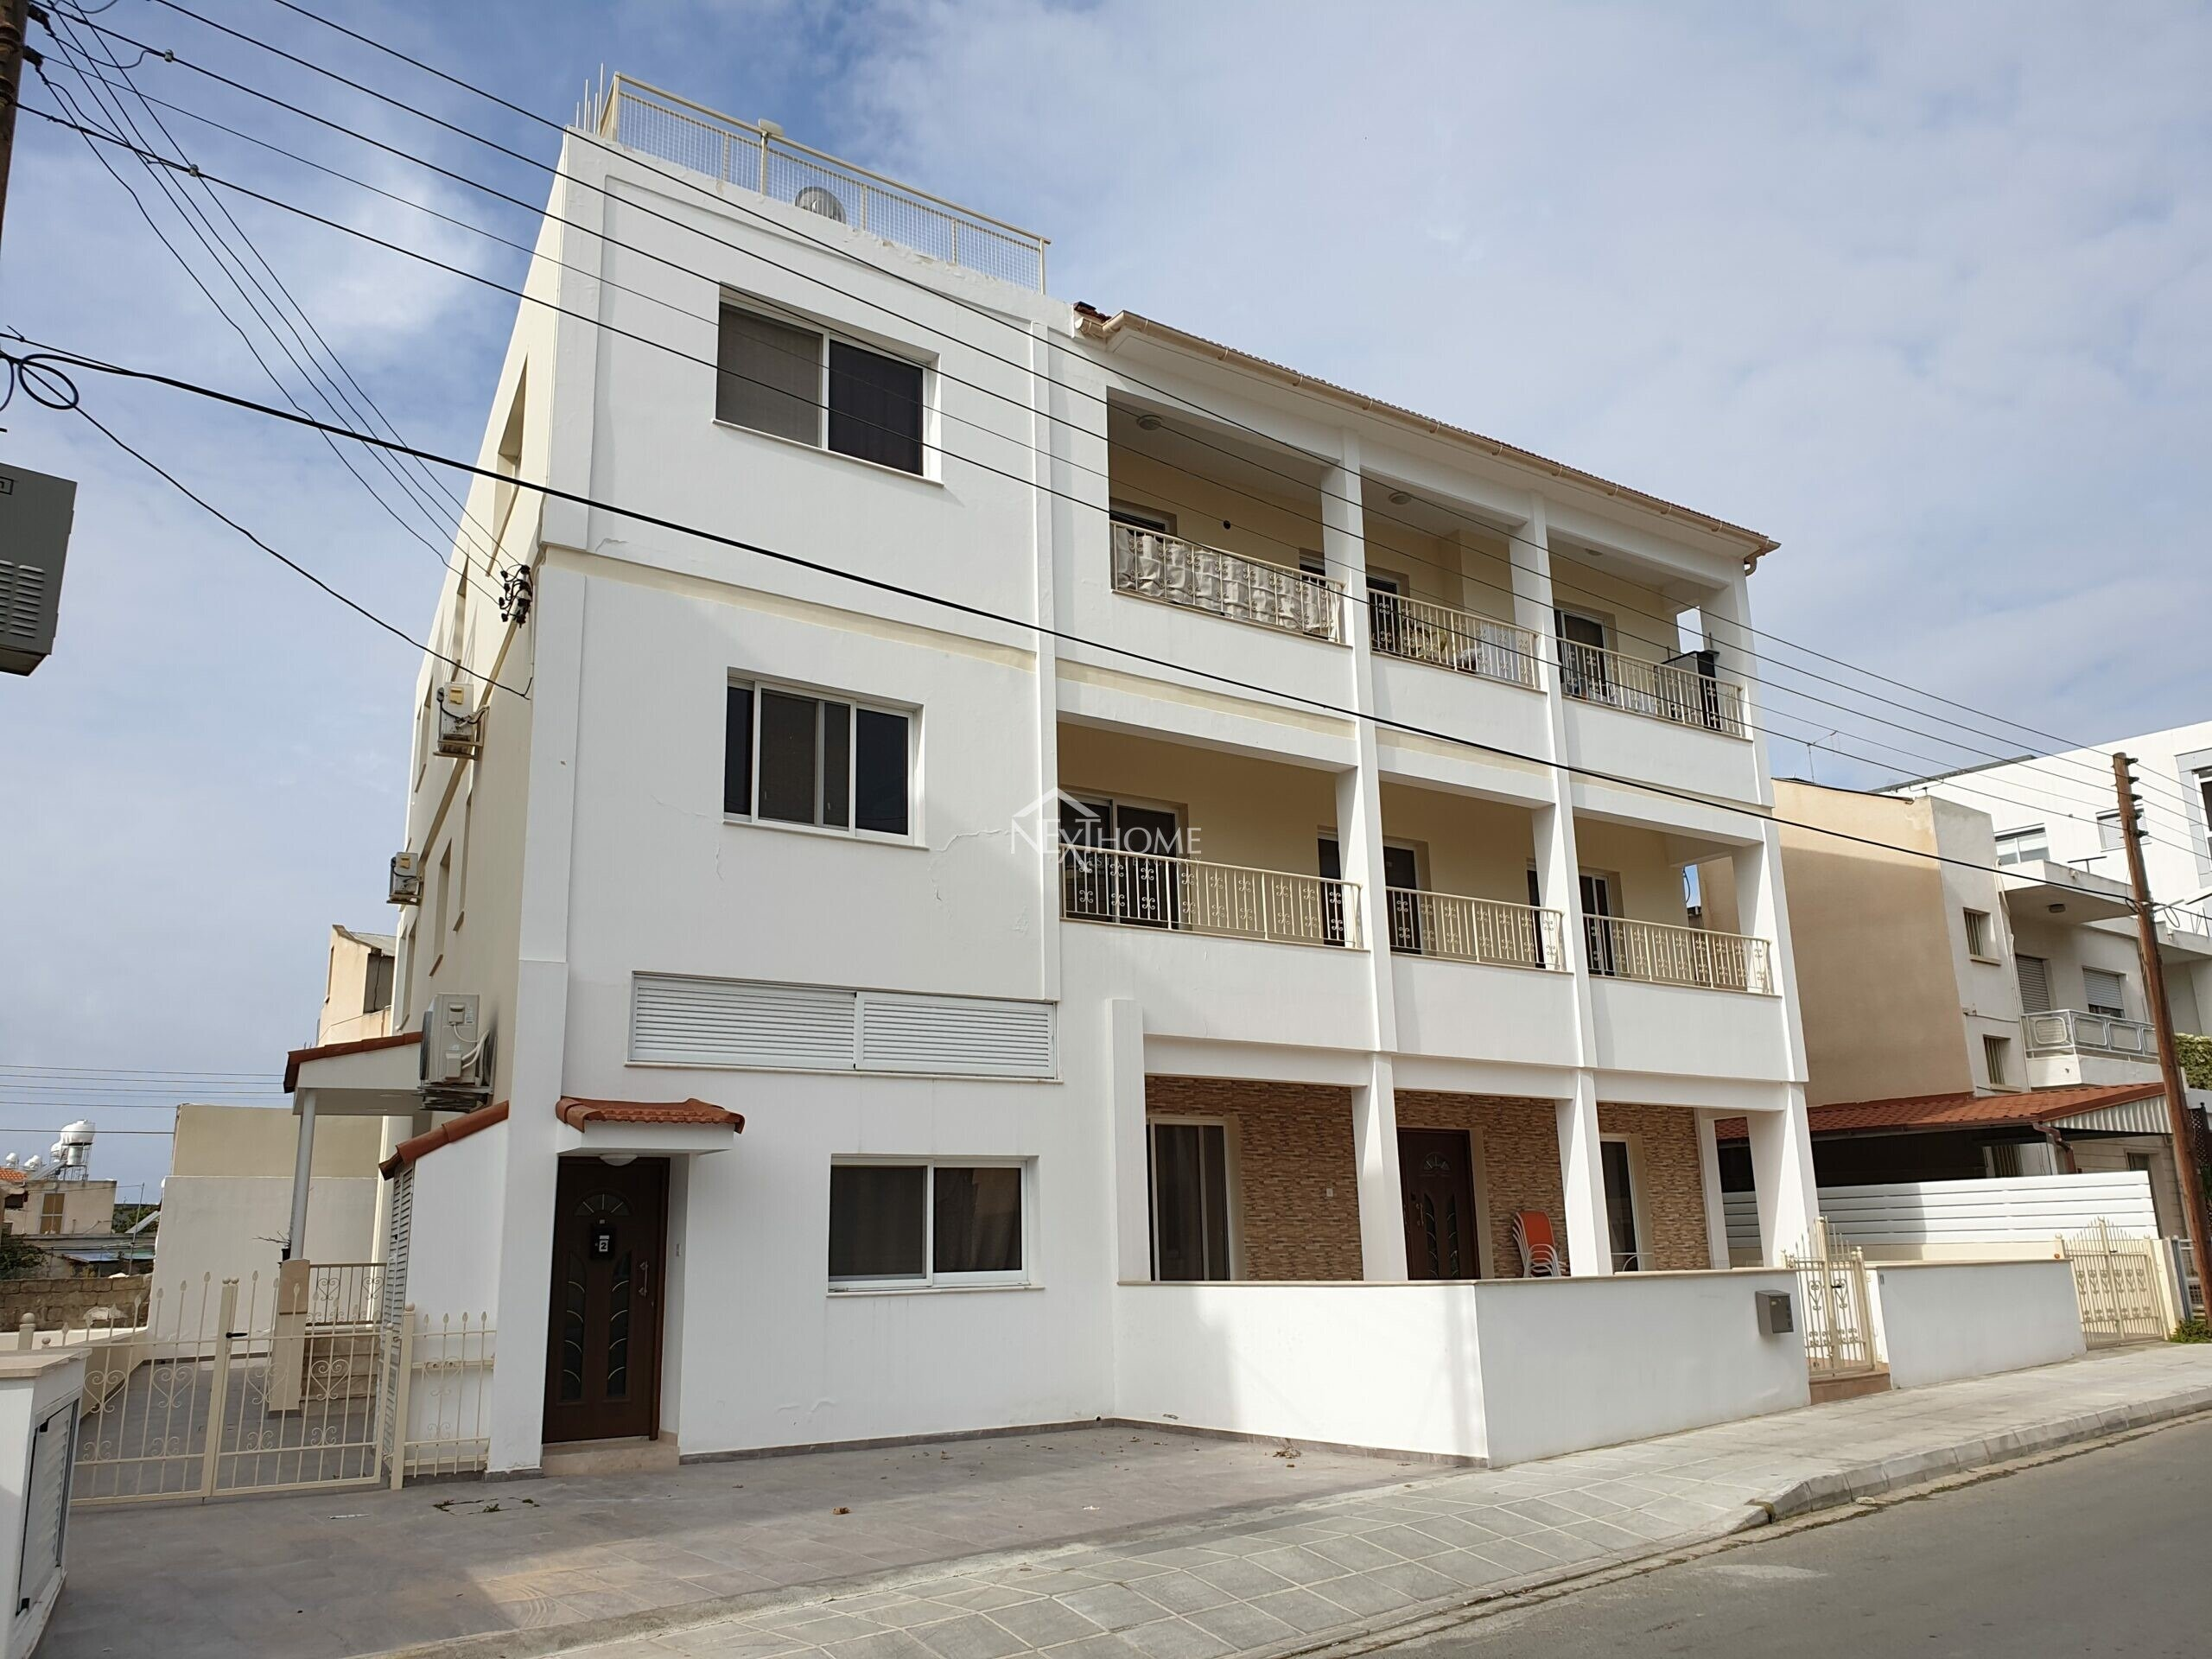 Residential building for sale in Limassol